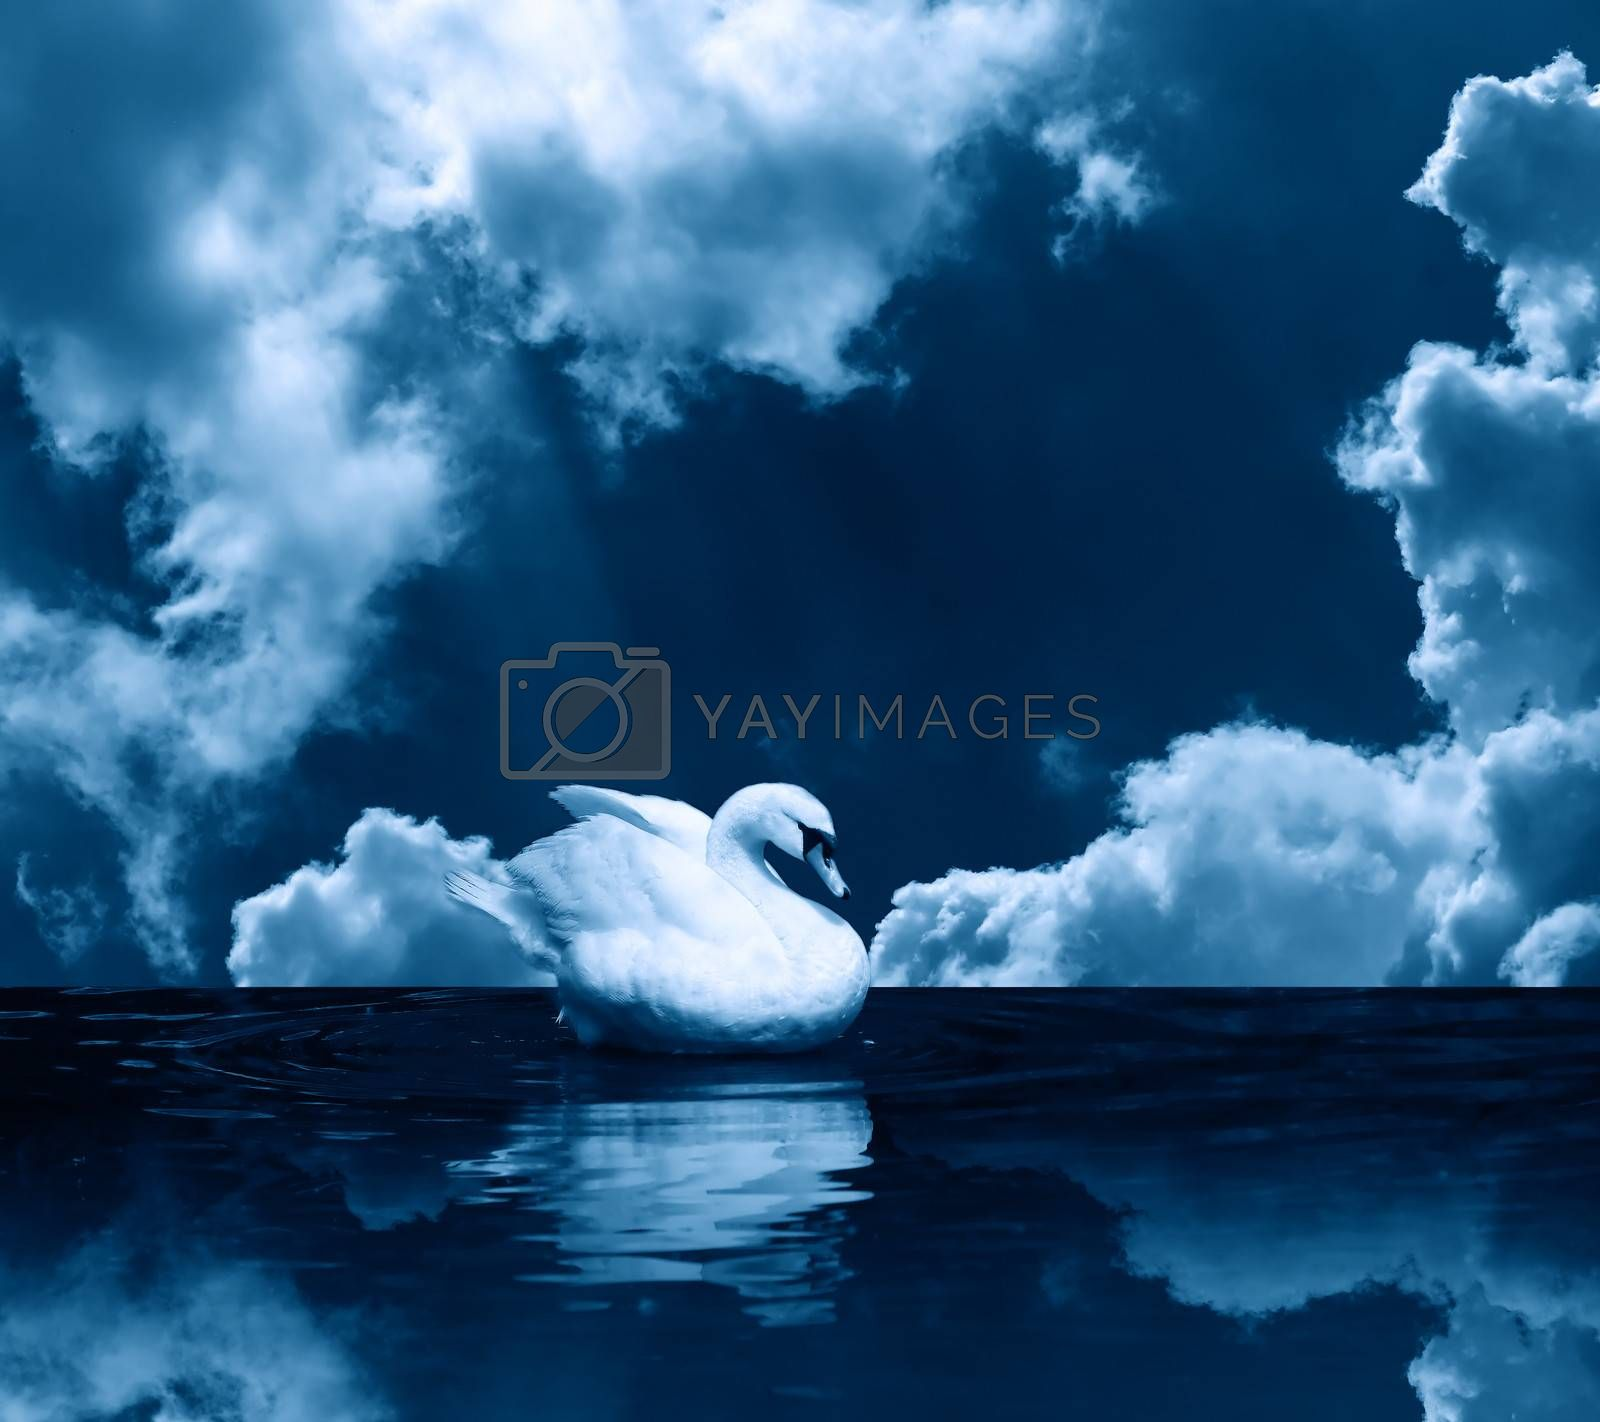 Romance symbol. Beautiful white swan on water surface under clouds